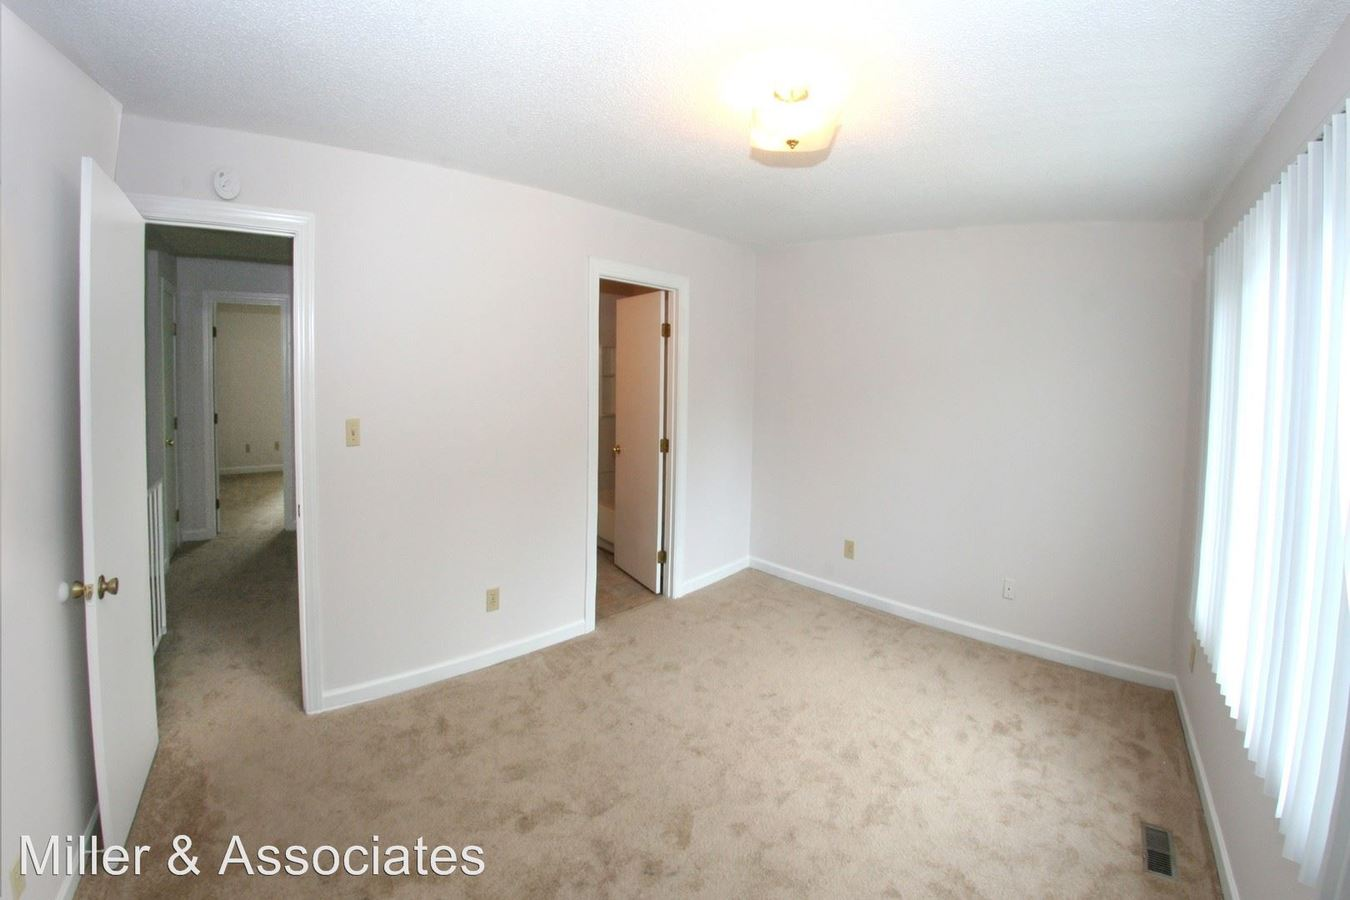 2 Bedrooms 2 Bathrooms Apartment for rent at 3900 N Center Street in Hickory, NC